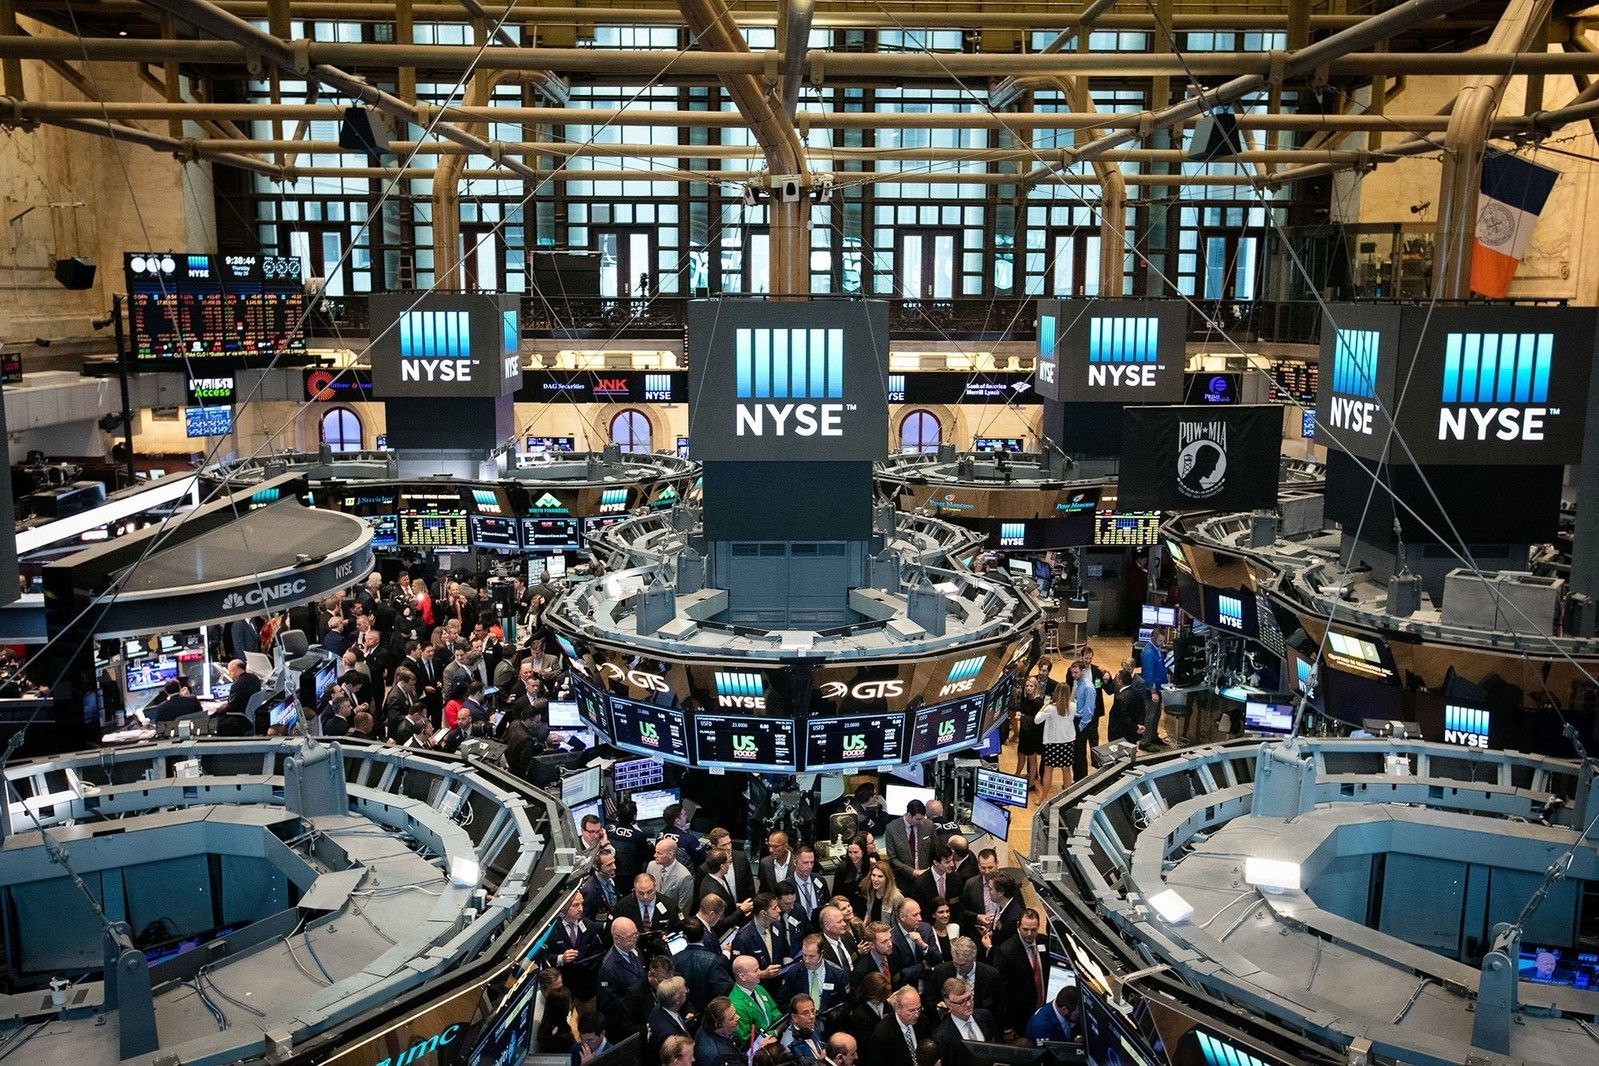 Nyse Wall Street Stock Exchange Trading Brokers Caribbean